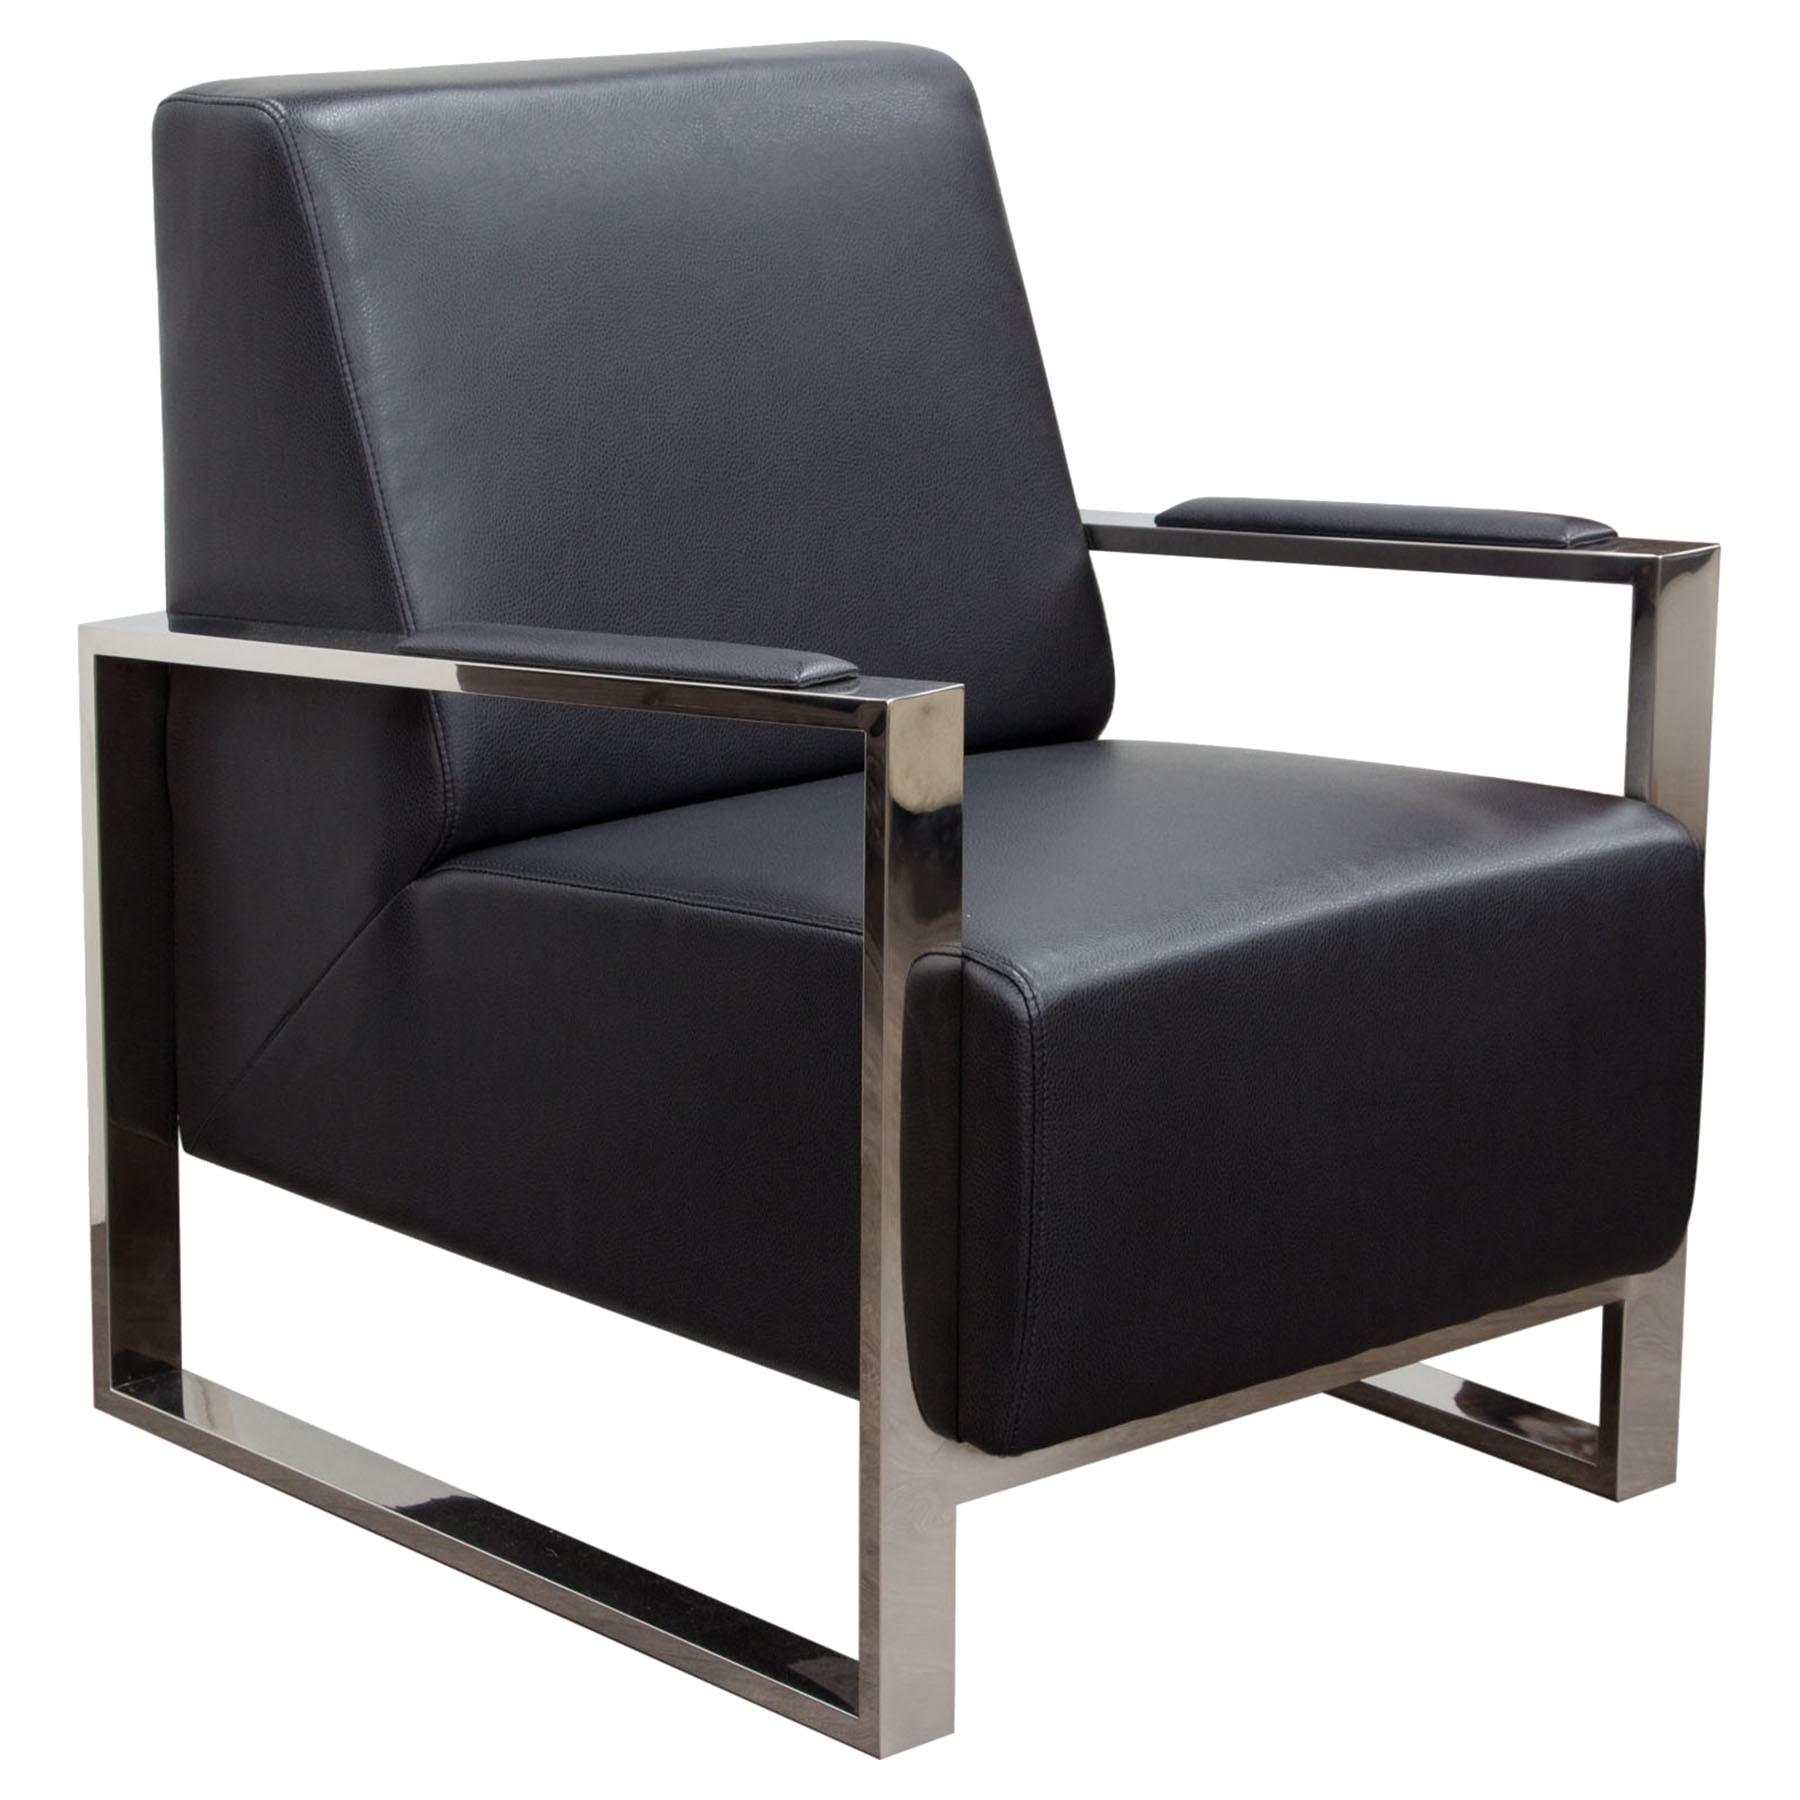 Century Bonded Leather Armchair   Black, Stainless Steel   DS CENTURYCHBL  ...